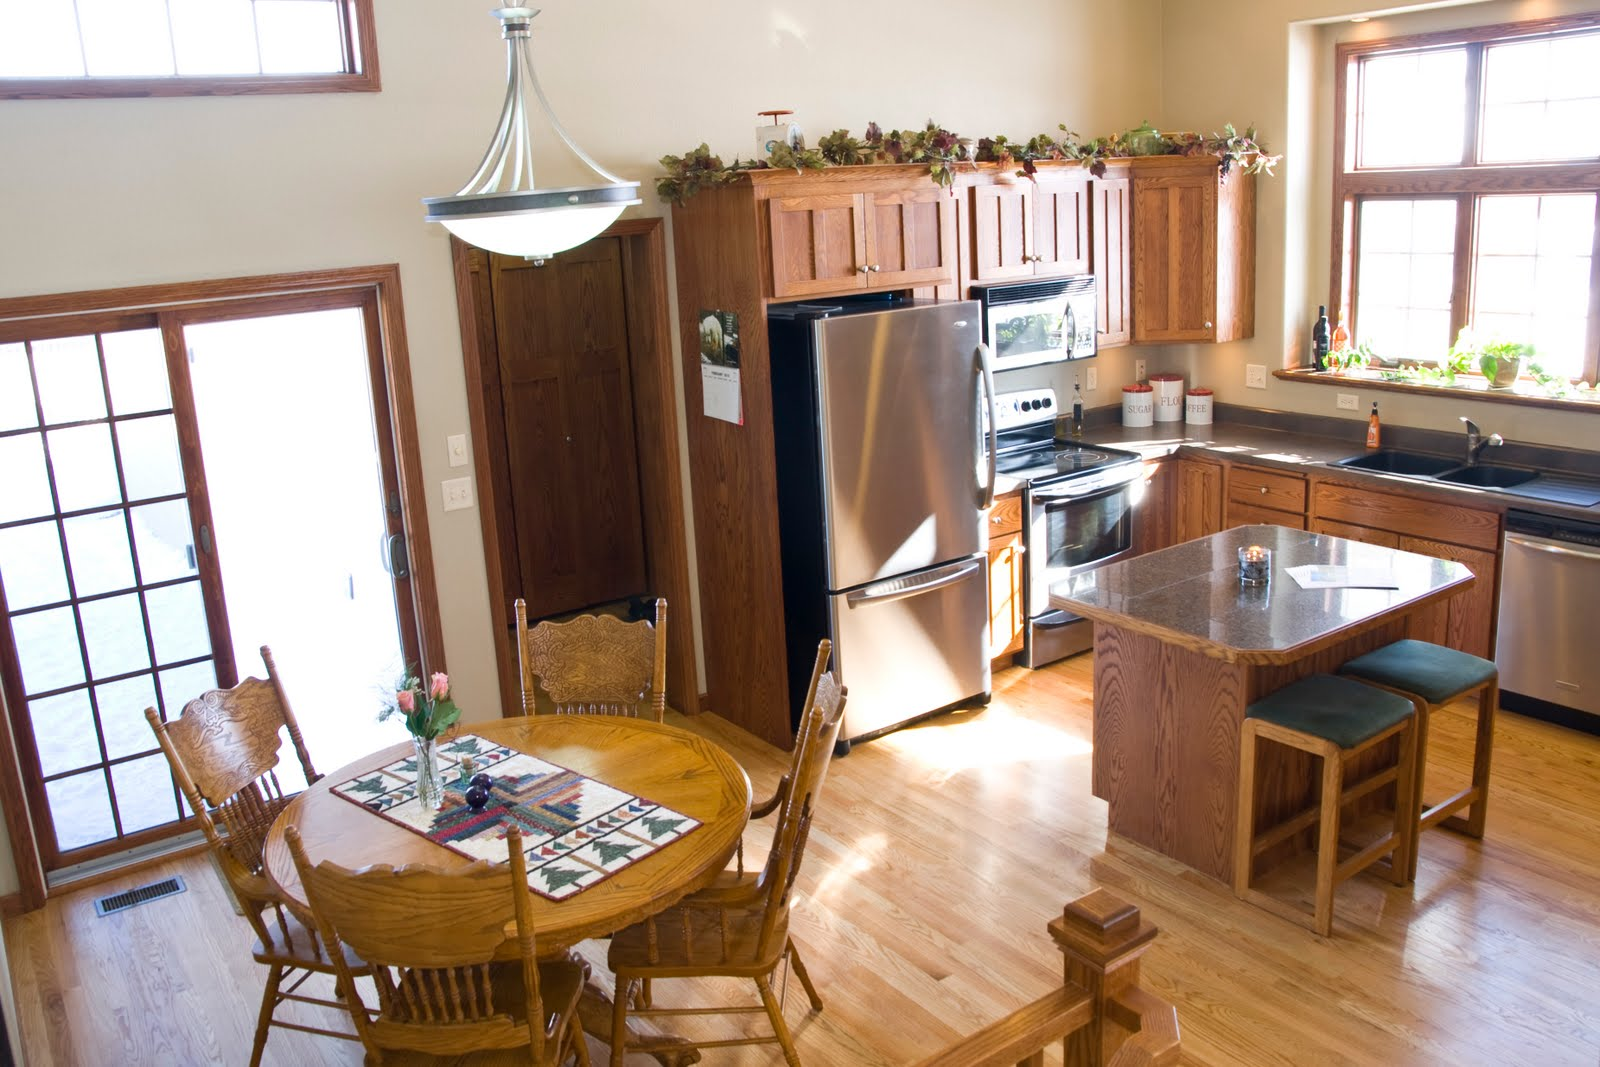 Pictures of 12 Foot Ceilings in Kitchens with Cabinets